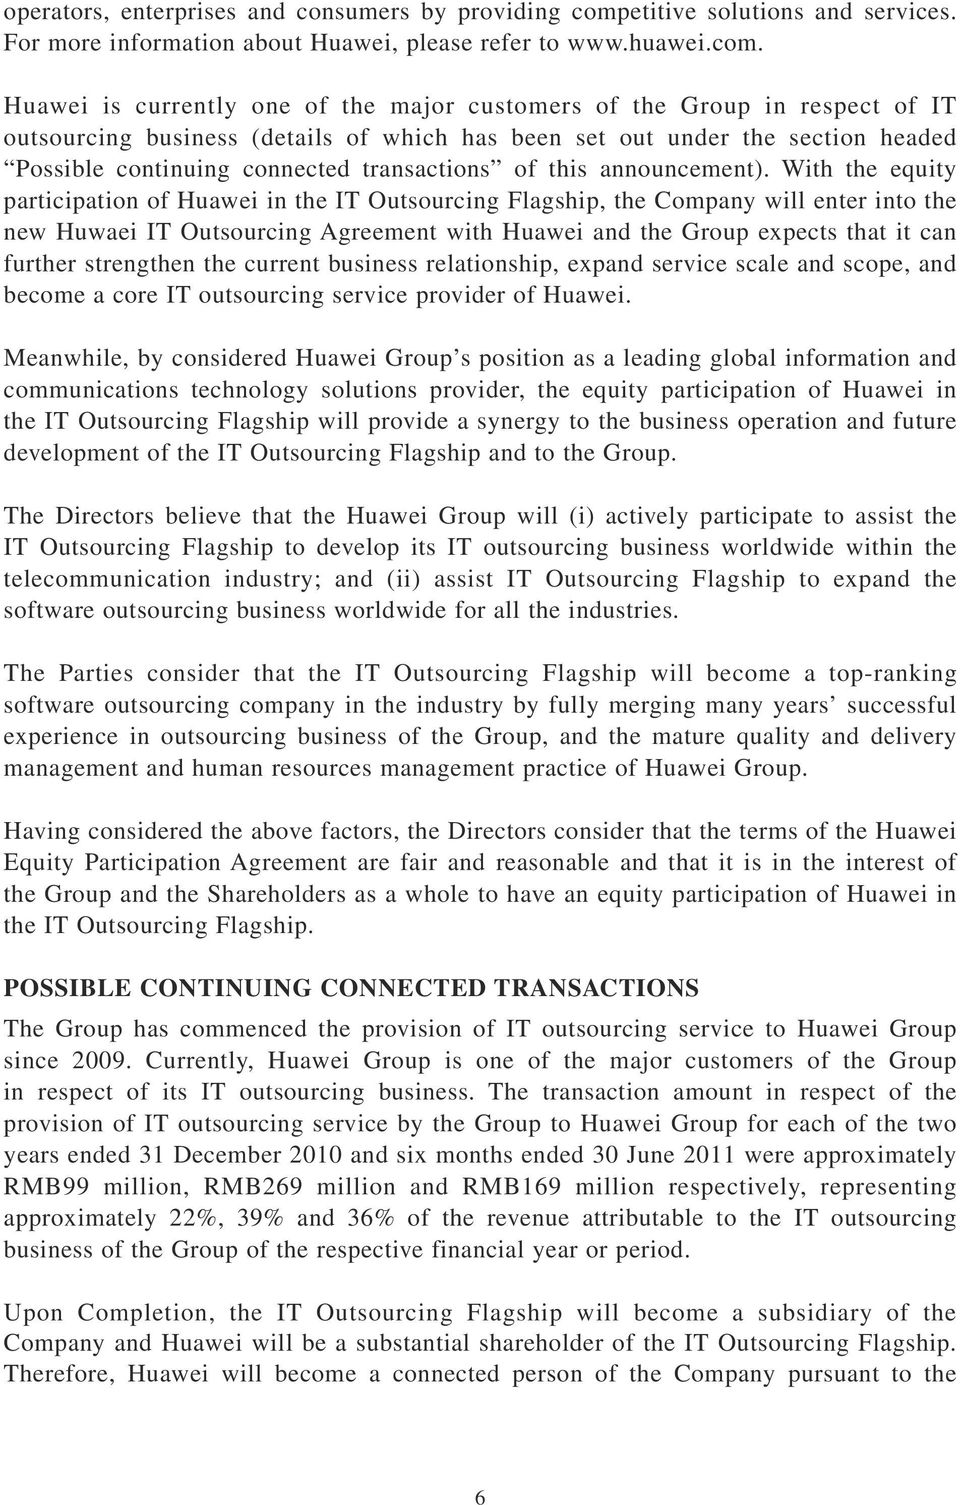 Huawei is currently one of the major customers of the Group in respect of IT outsourcing business (details of which has been set out under the section headed Possible continuing connected